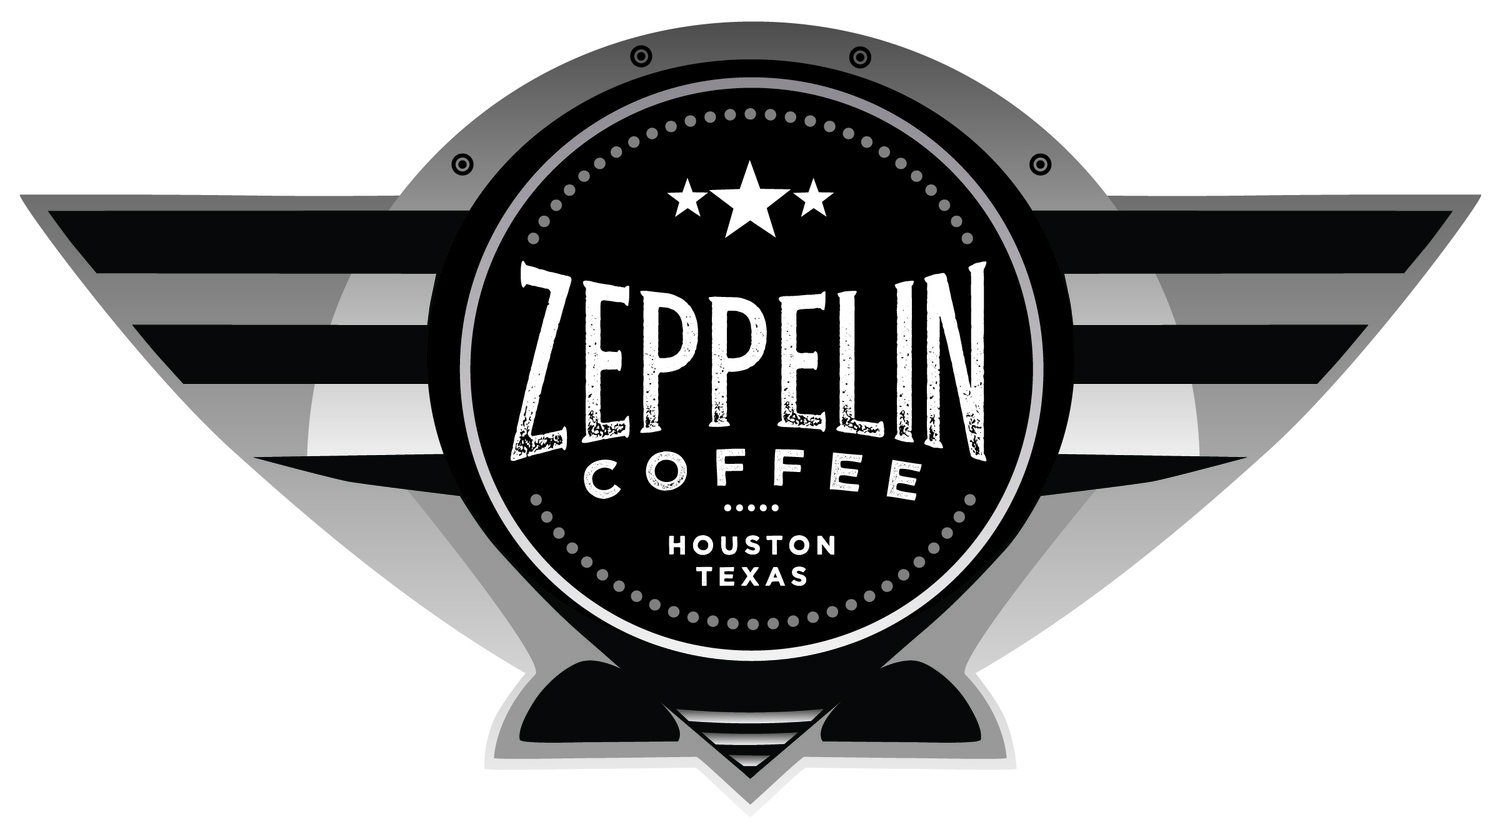 Zeppelin Coffee Company